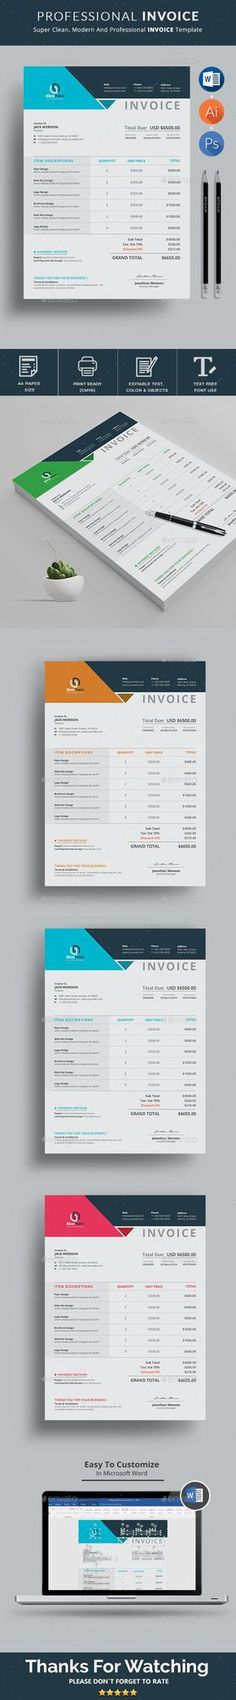 Invoice Template Template, Logos and Business card logo